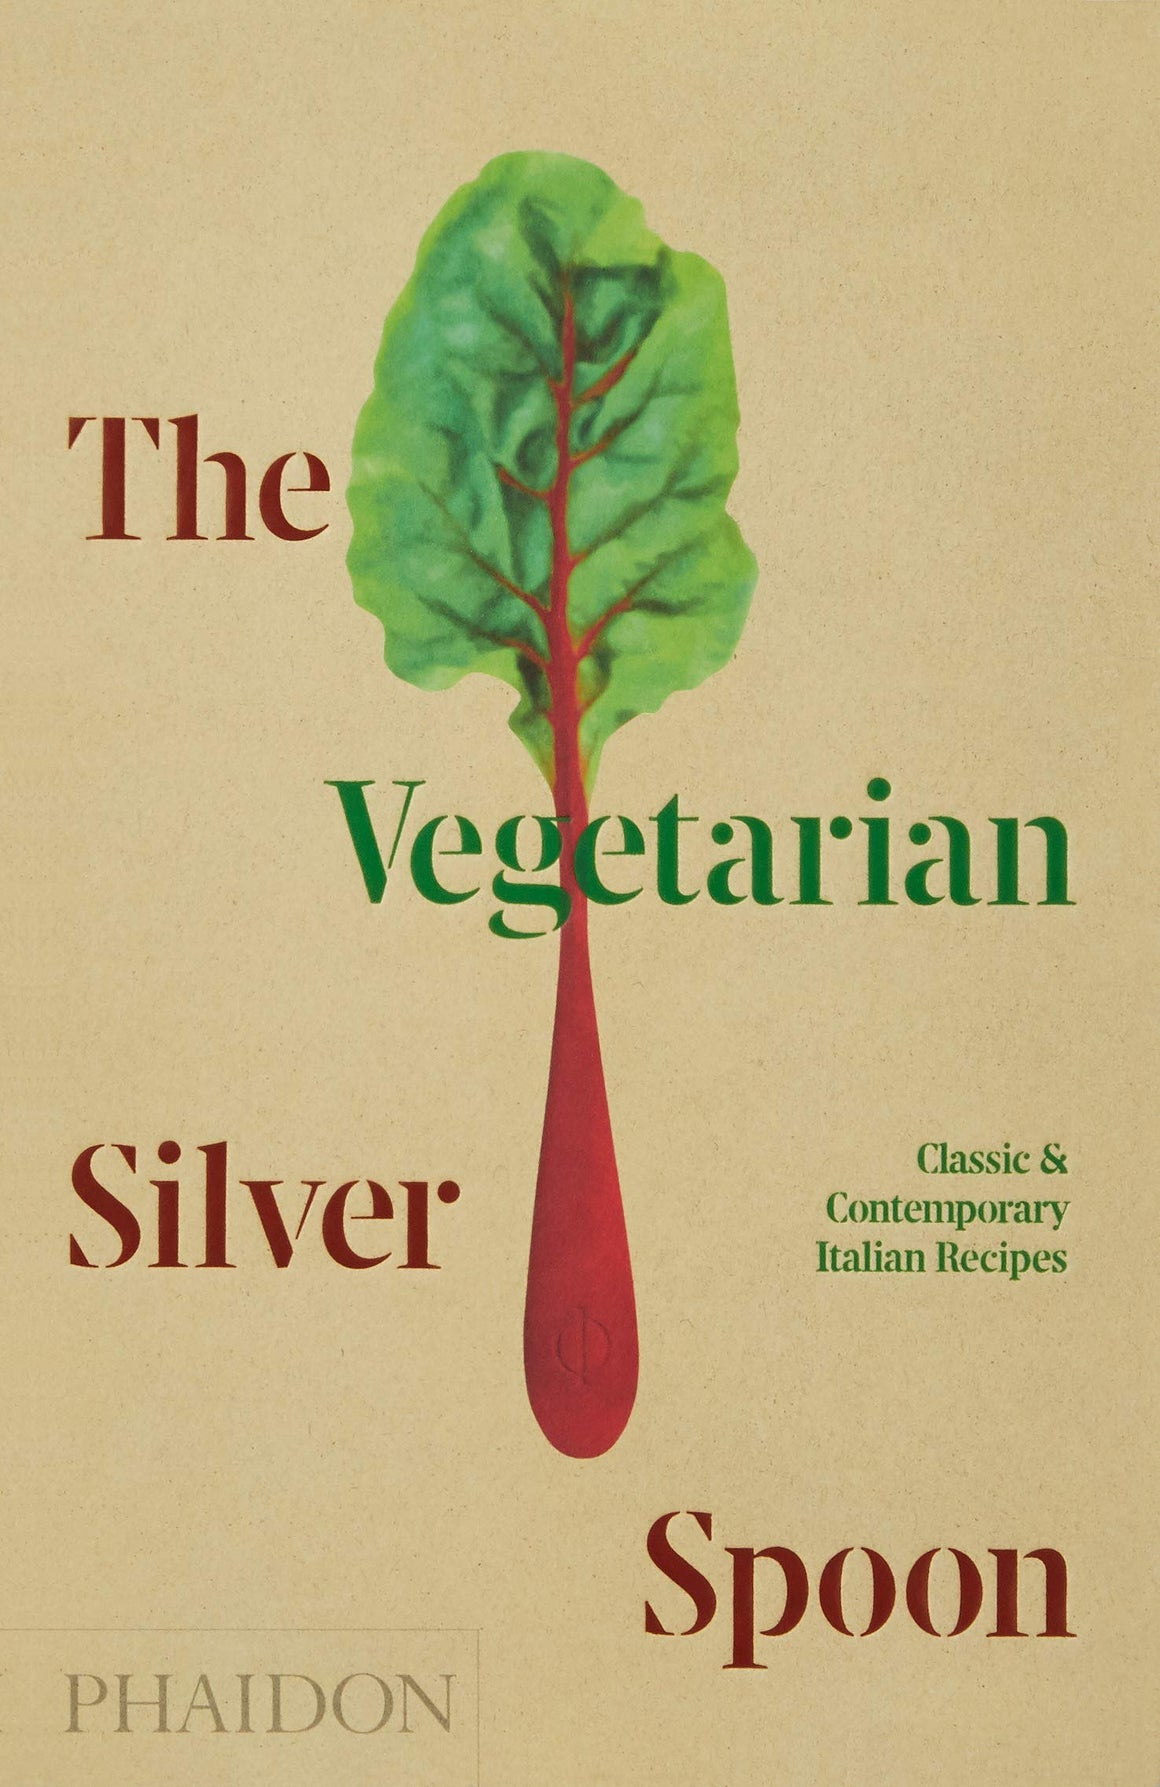 (Vegetarian) The Silver Spoon Kitchen. The Vegetarian Silver Spoon: Classic and Contemporary Italian Recipes